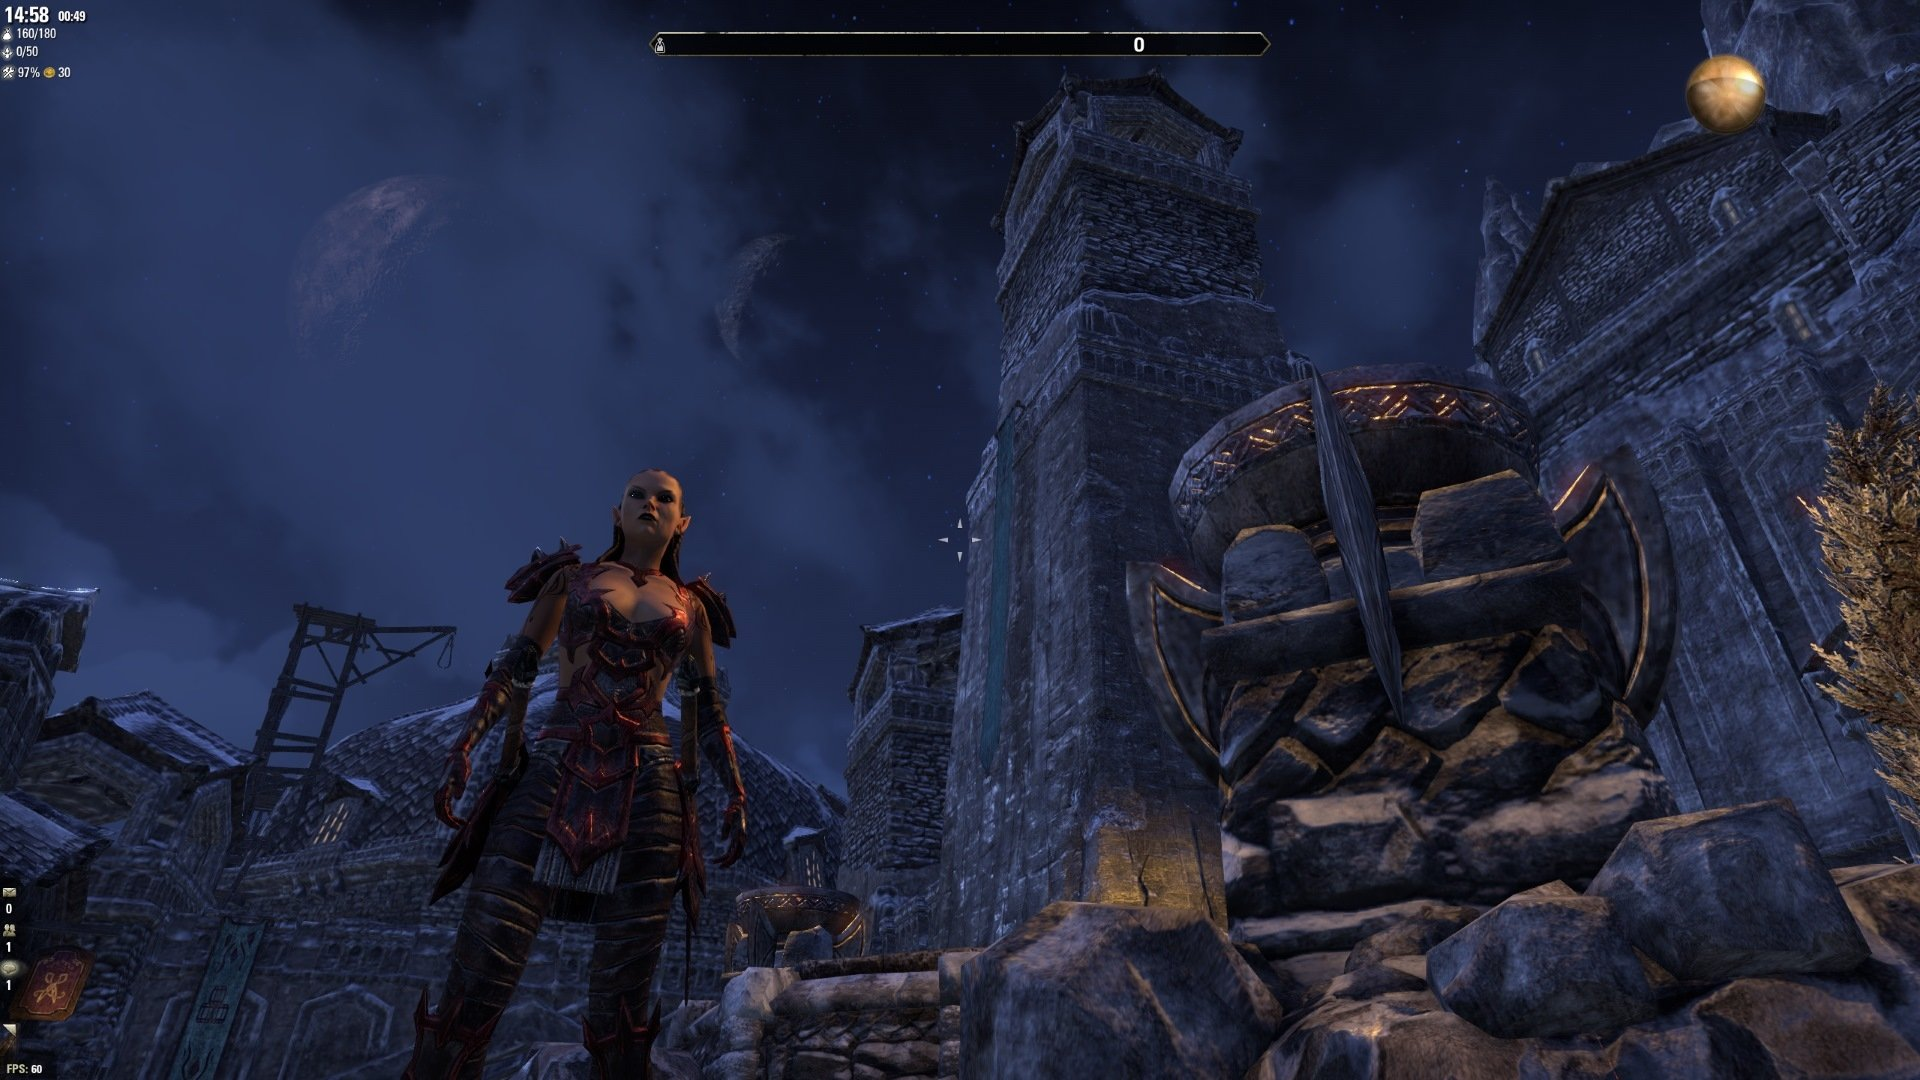 Votan's Darker Nights : RolePlay : Elder Scrolls Online AddOns